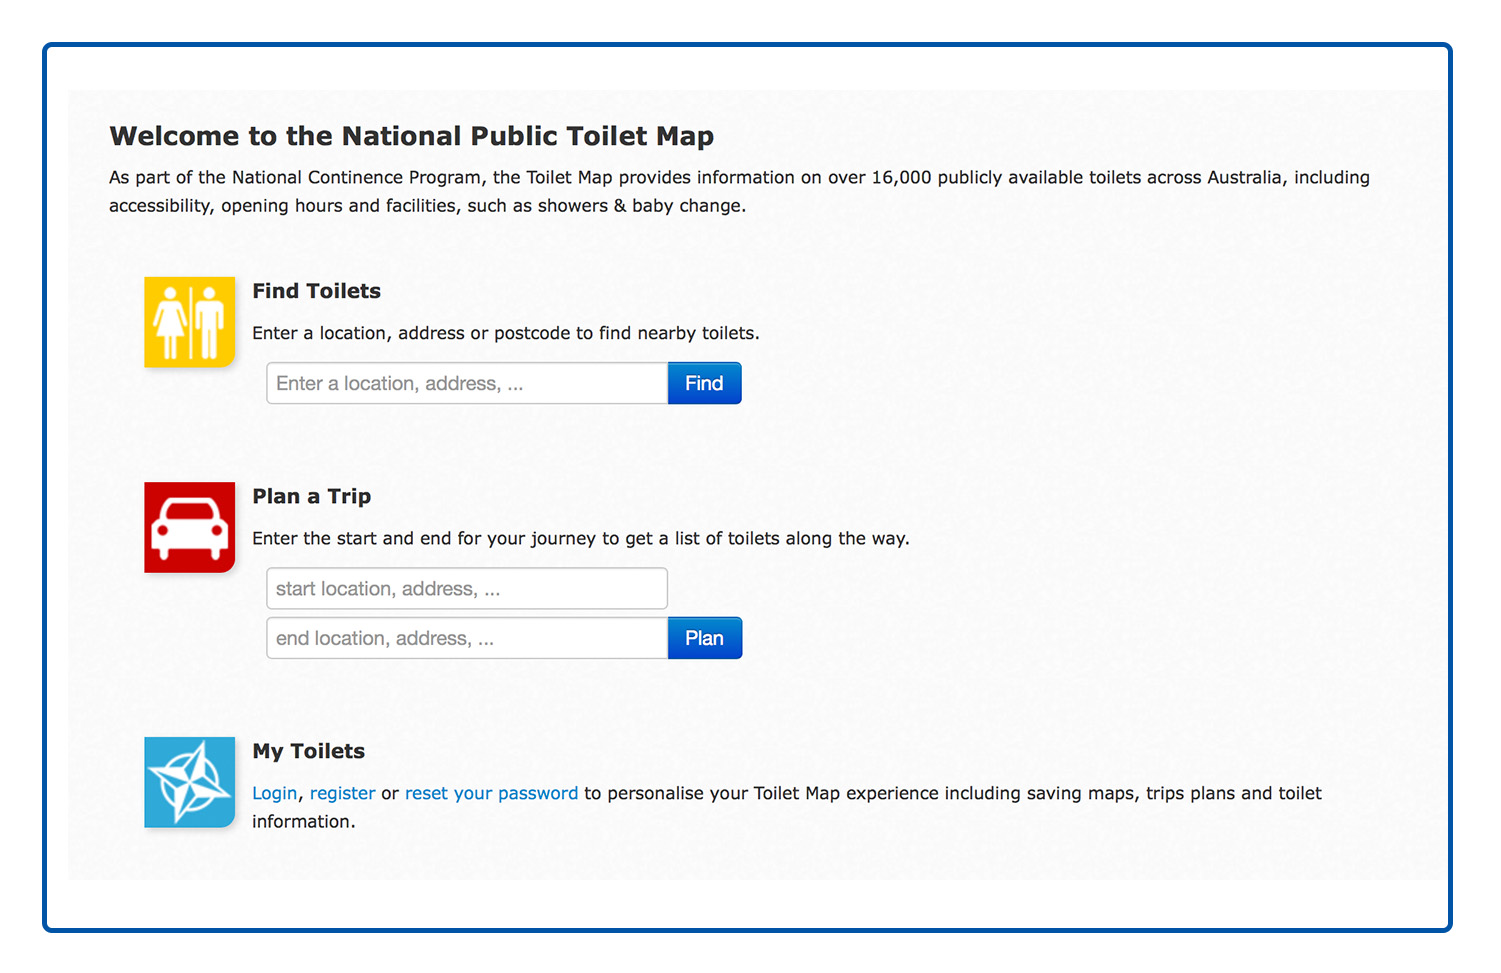 National Public Toilet Map Welcome to the National Public Toilet Map – Heartbeat Nursing and HACC